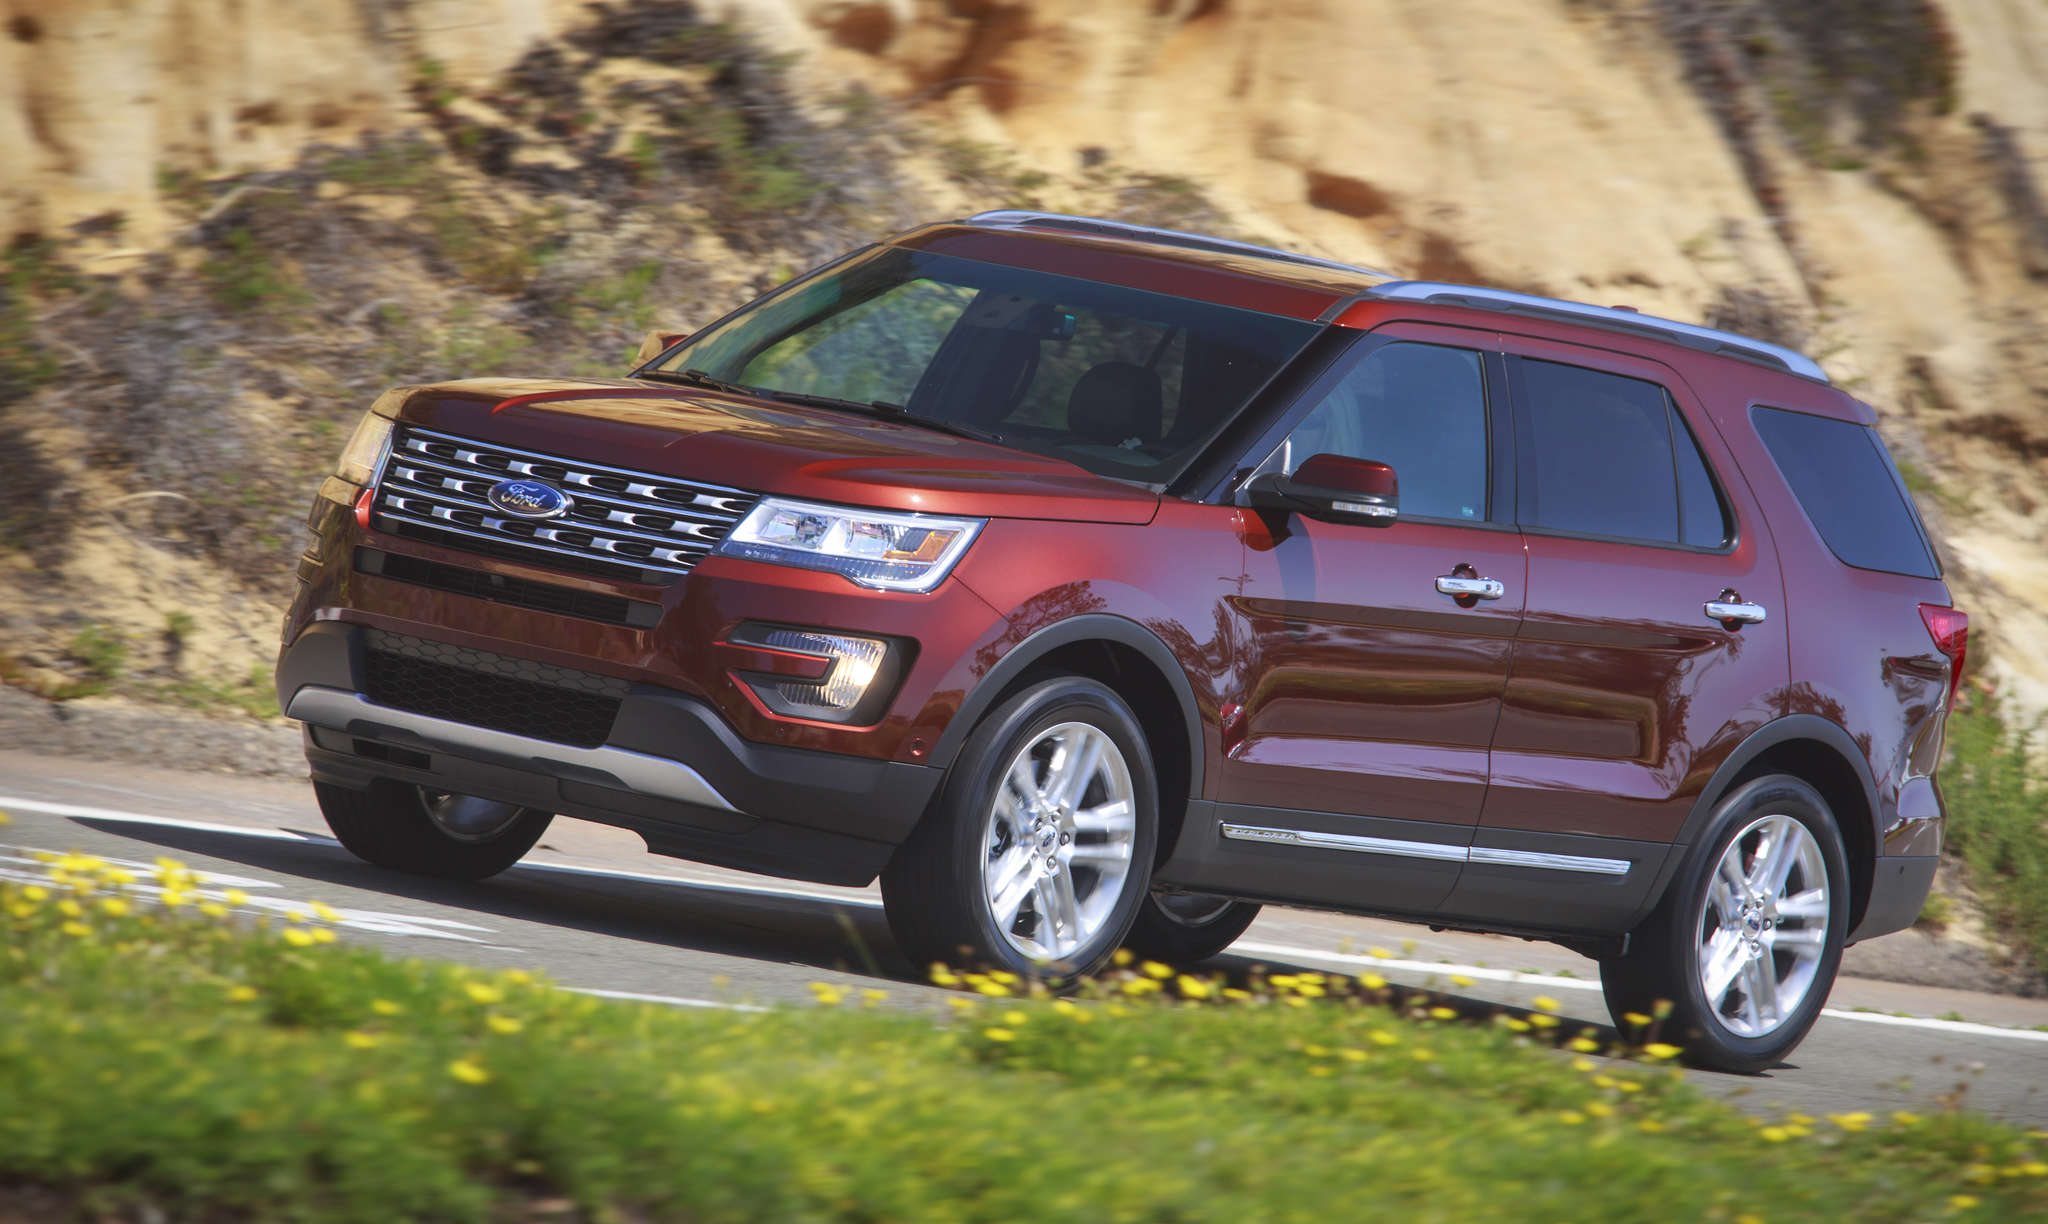 The 2016 Ford Explorer feels miles ahead of an earlier tested version, with smooth handling and nice acceleration.